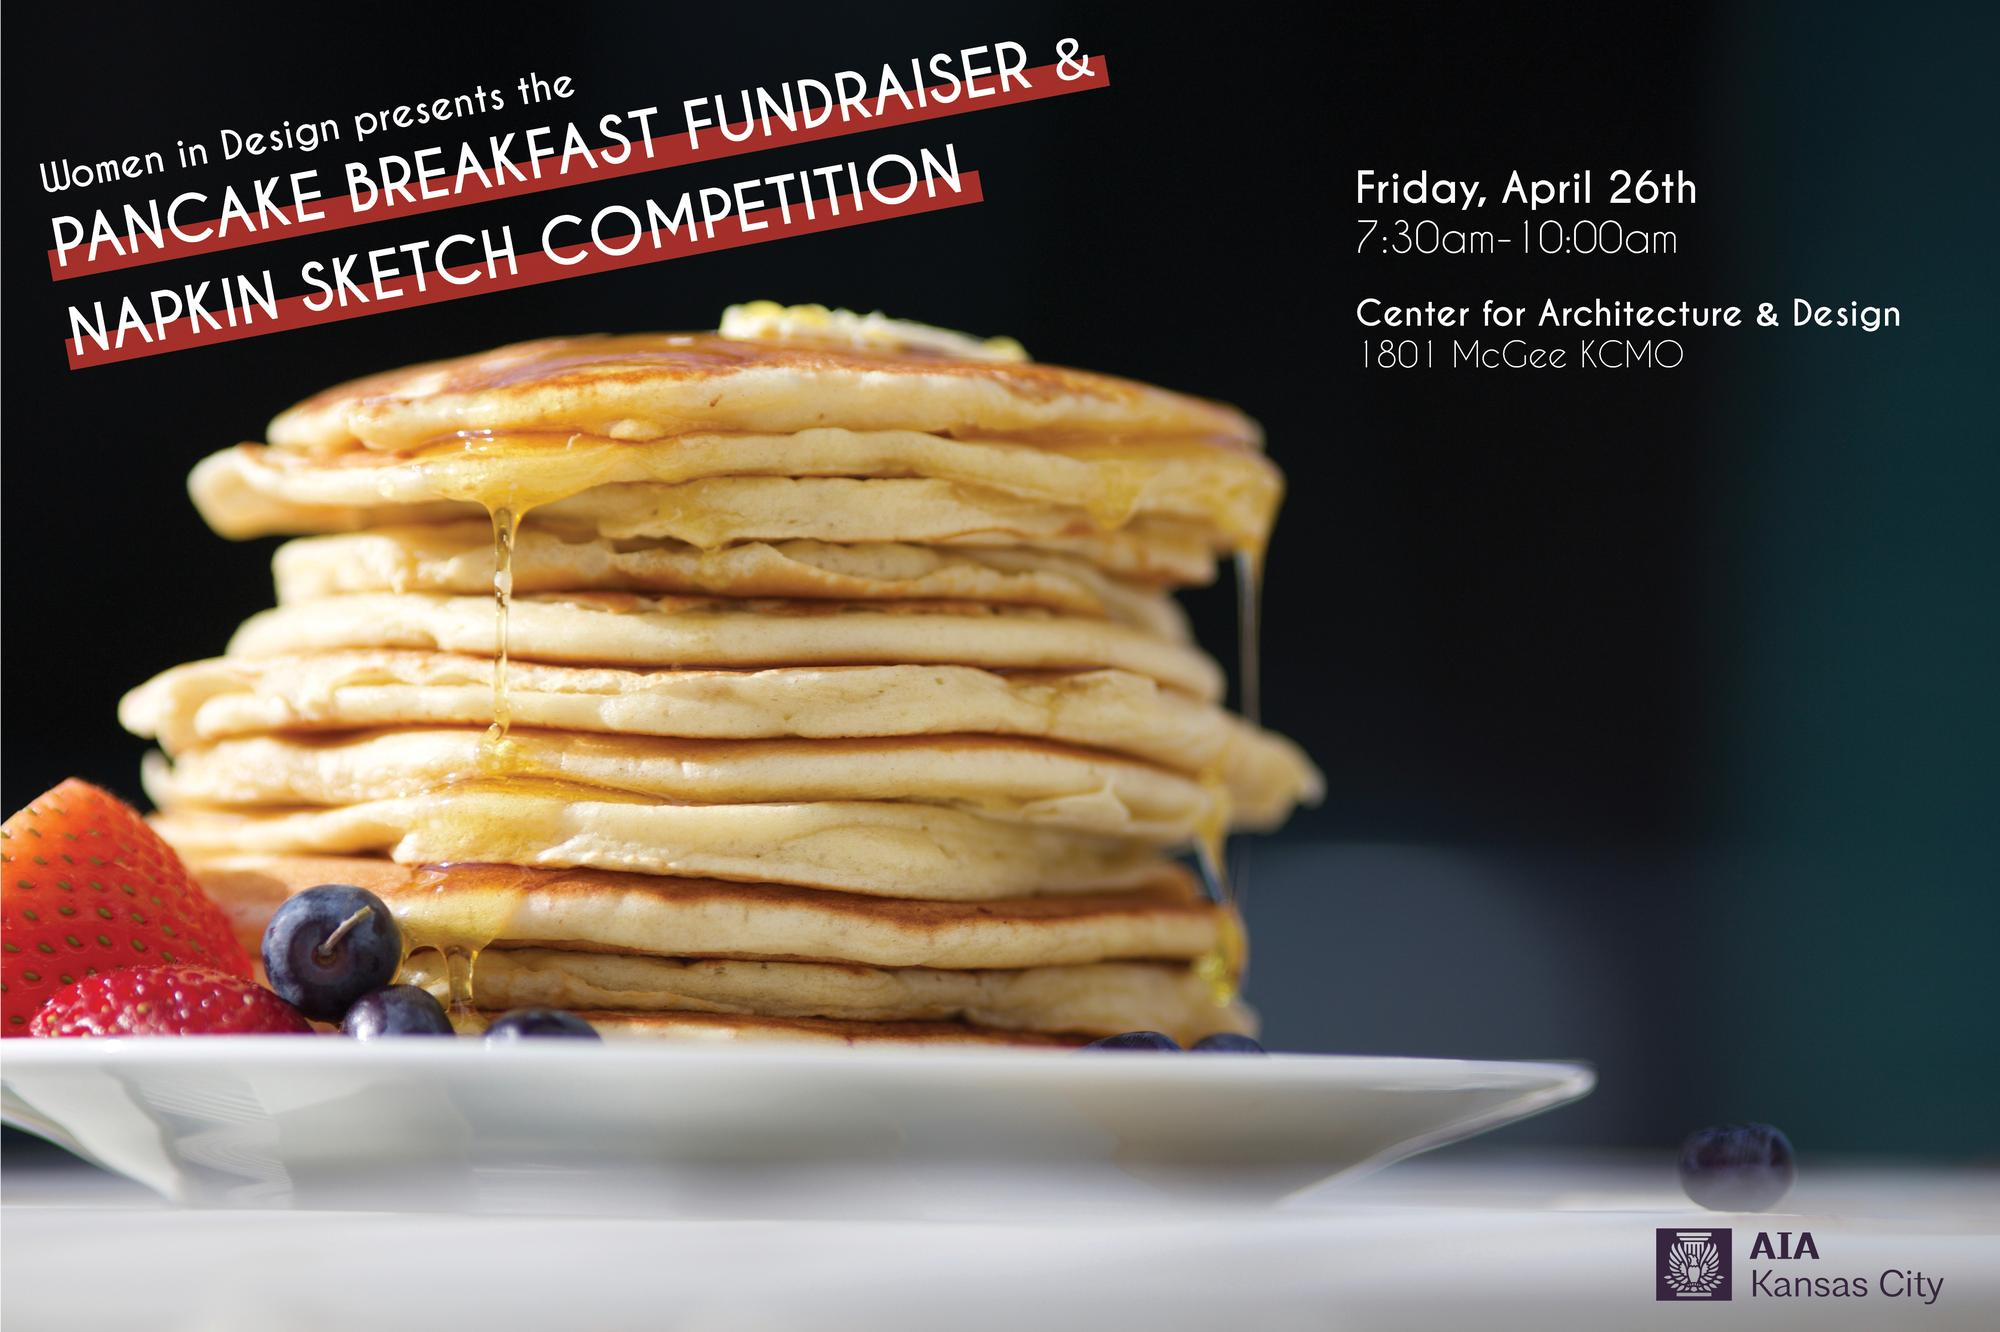 Women in Design Presents:Pancake Breakfast Fundraiser & Napkin Sketch Competition